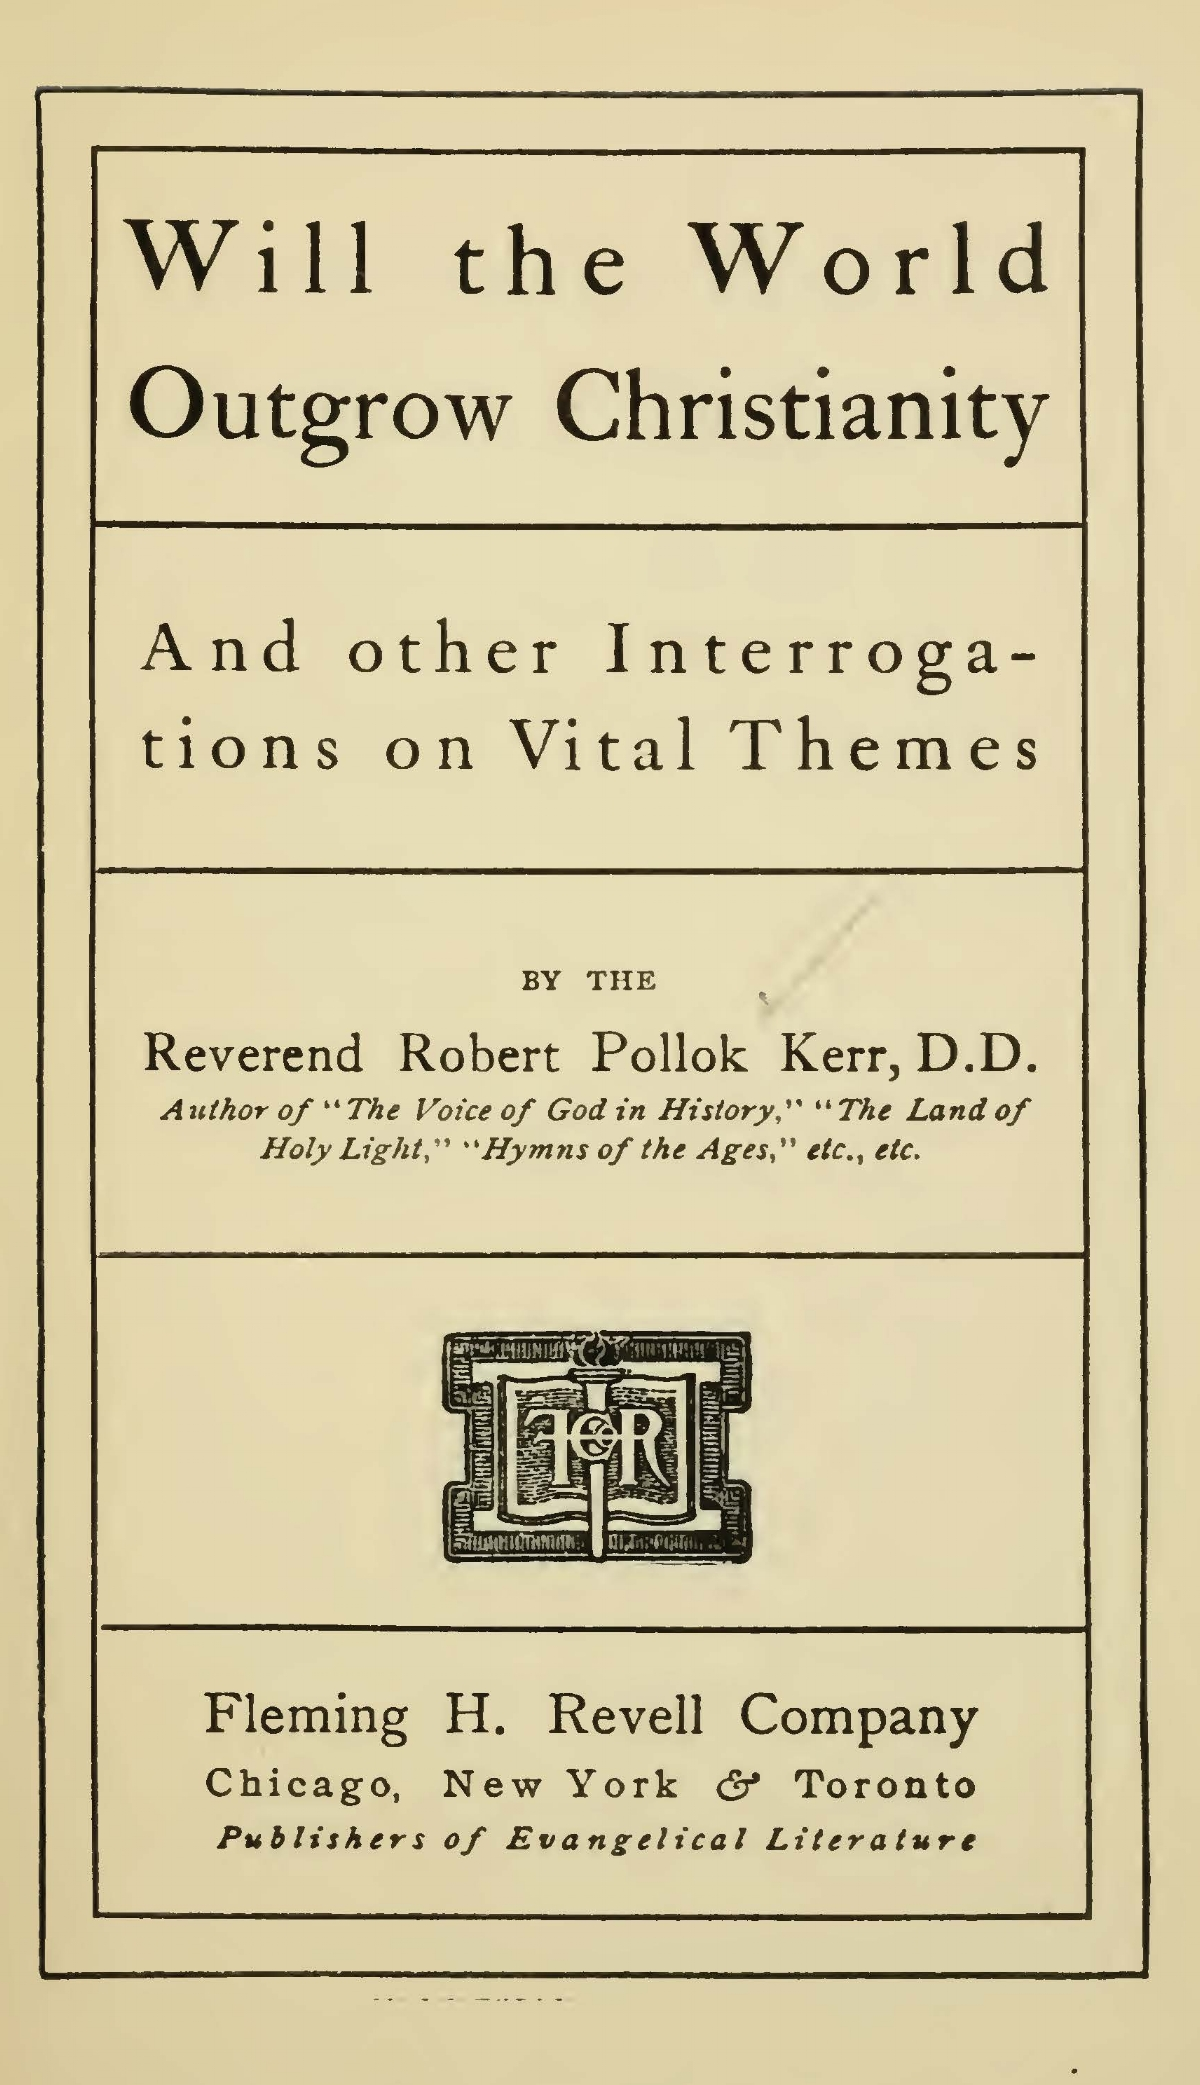 Kerr, Robert Pollock, Will the World Outgrow Christianity Title Page.jpg